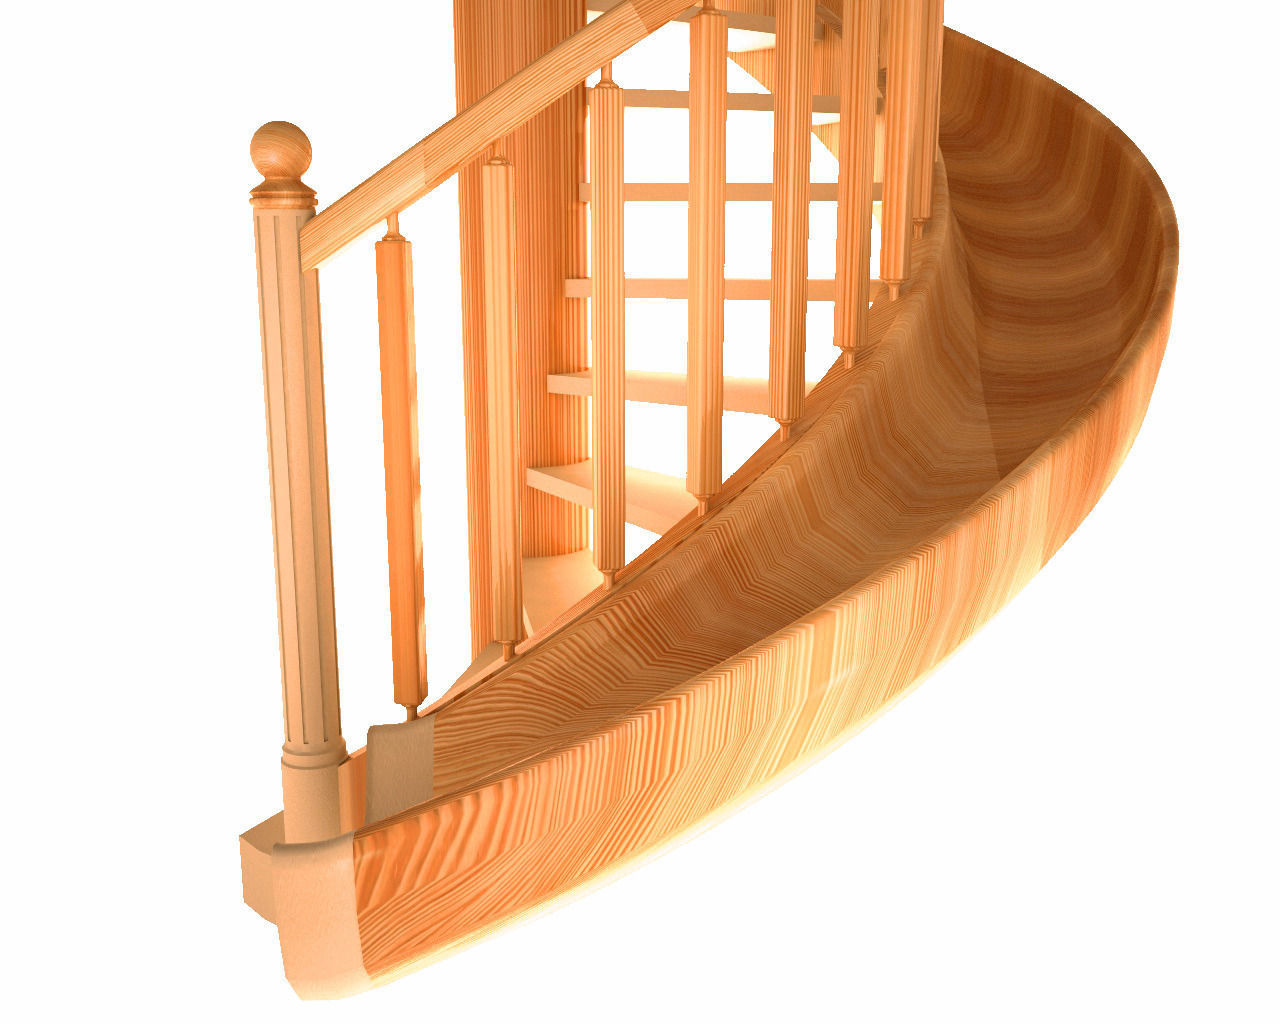 ... Wooden Spiral Staircase 3d Model Obj Mtl 3ds Fbx C4d 2 ...